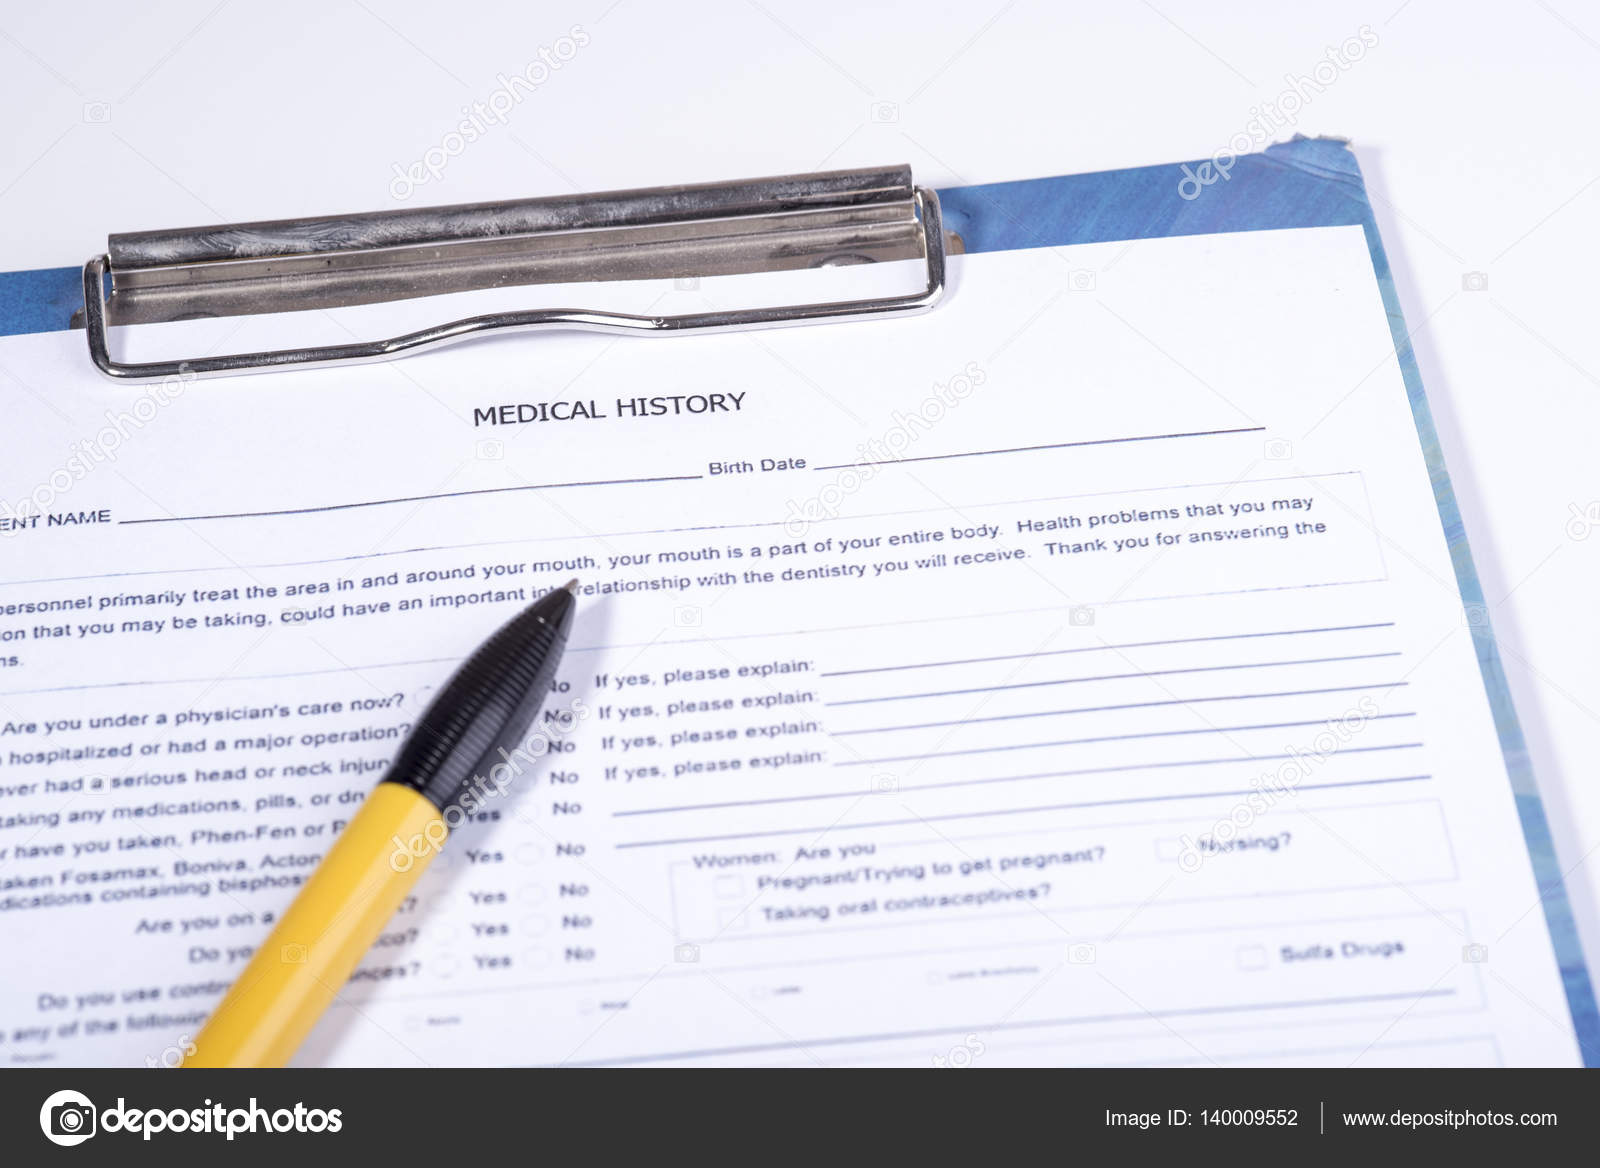 medical history questionnaire stock photo piotr290 140009552